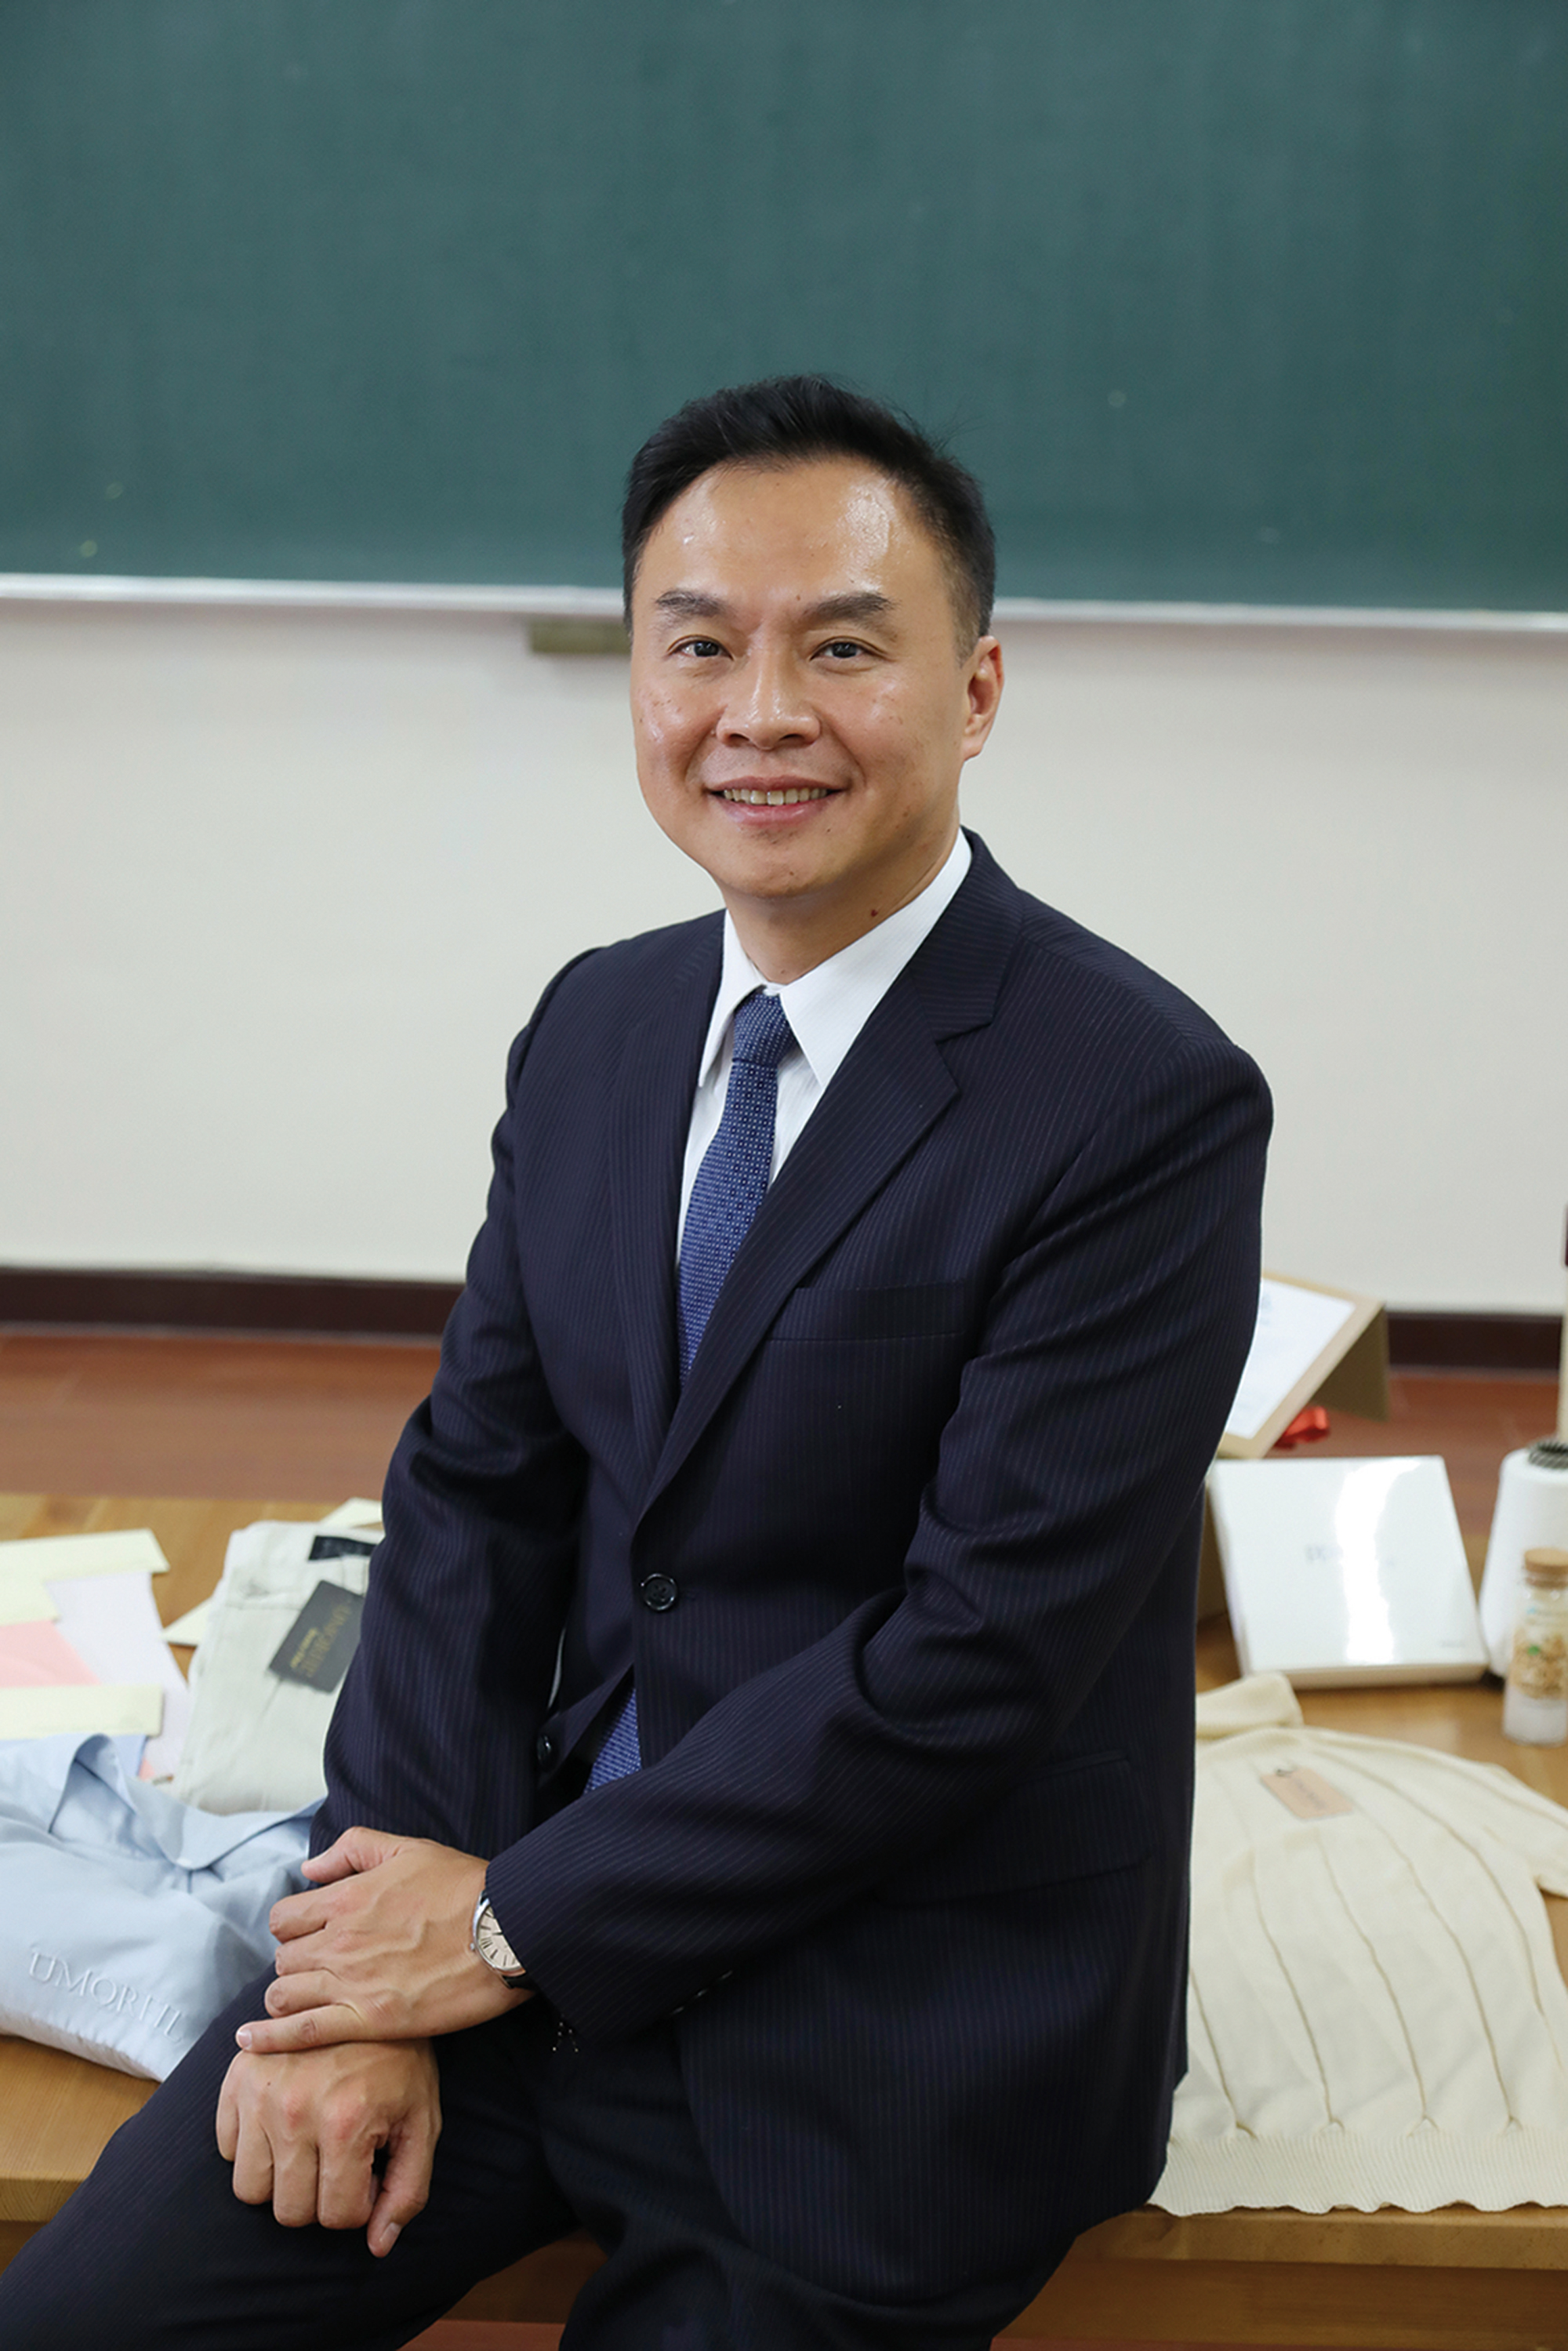 James Hou, the son of a famous family in the textile industry, has special feelings and a sense of mission toward this industry.